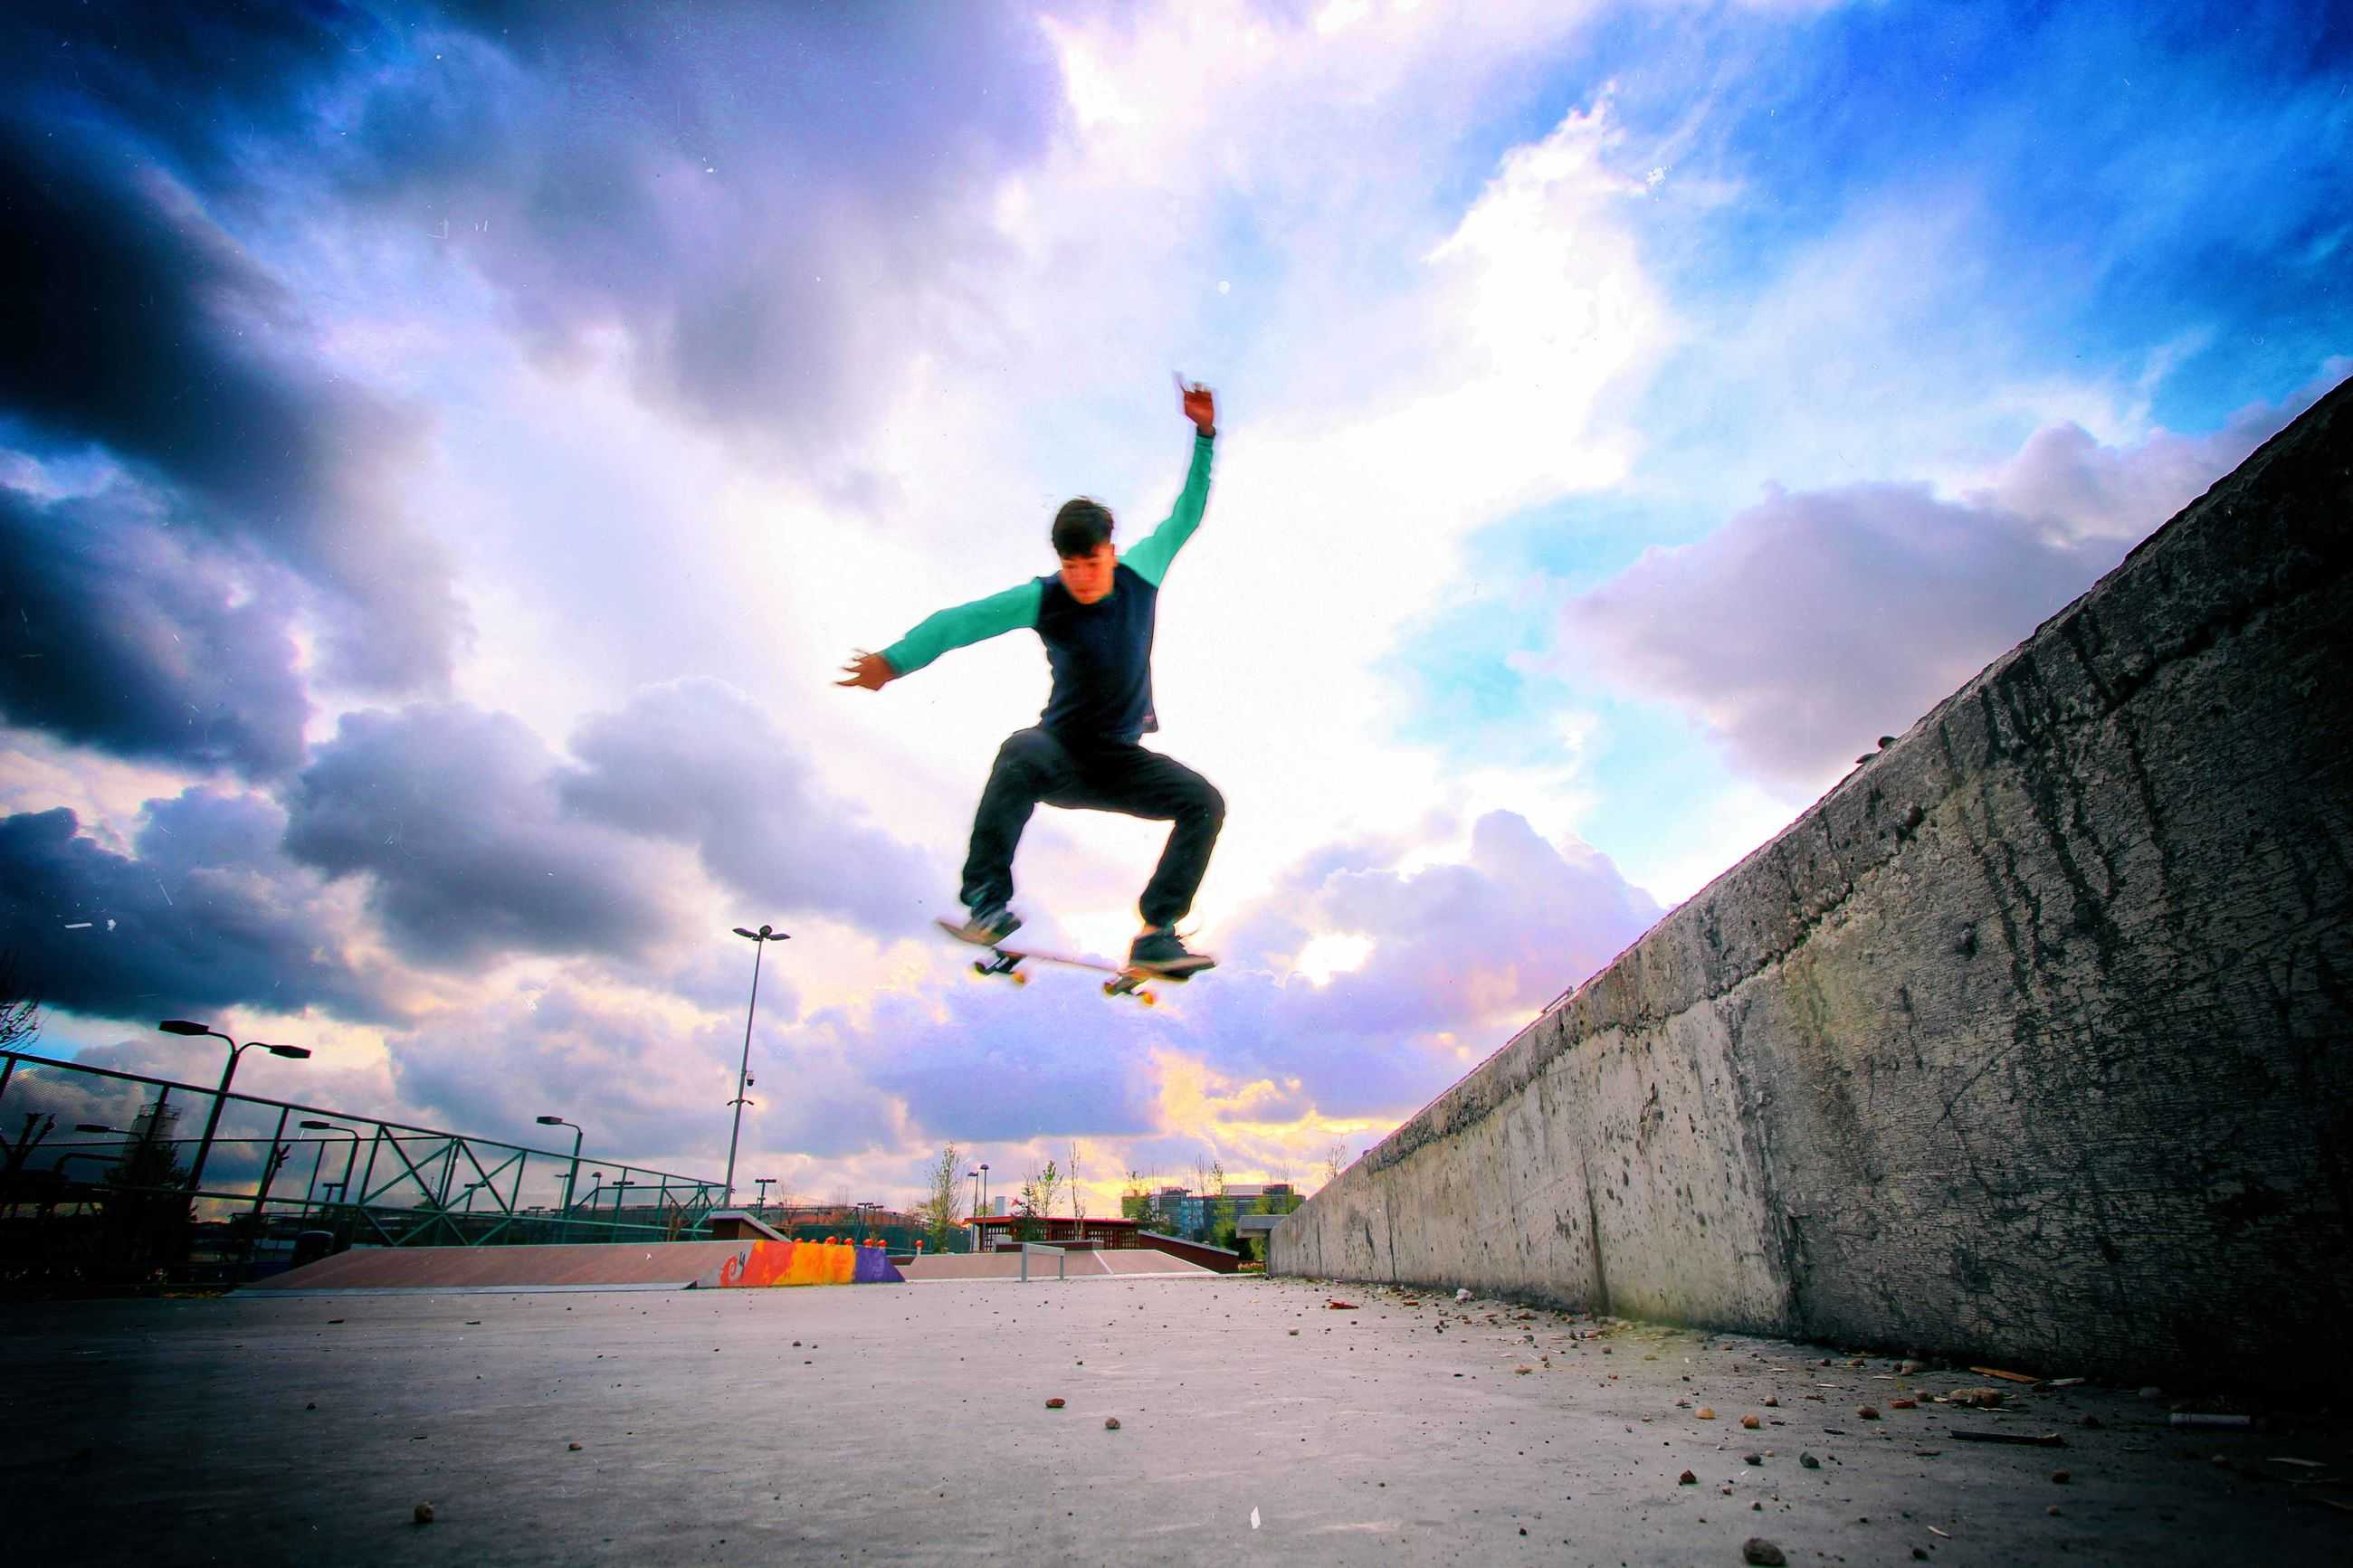 jumping, full length, mid-air, sky, skill, skateboard, cloud - sky, outdoors, stunt, one person, day, energetic, motion, men, extreme sports, real people, people